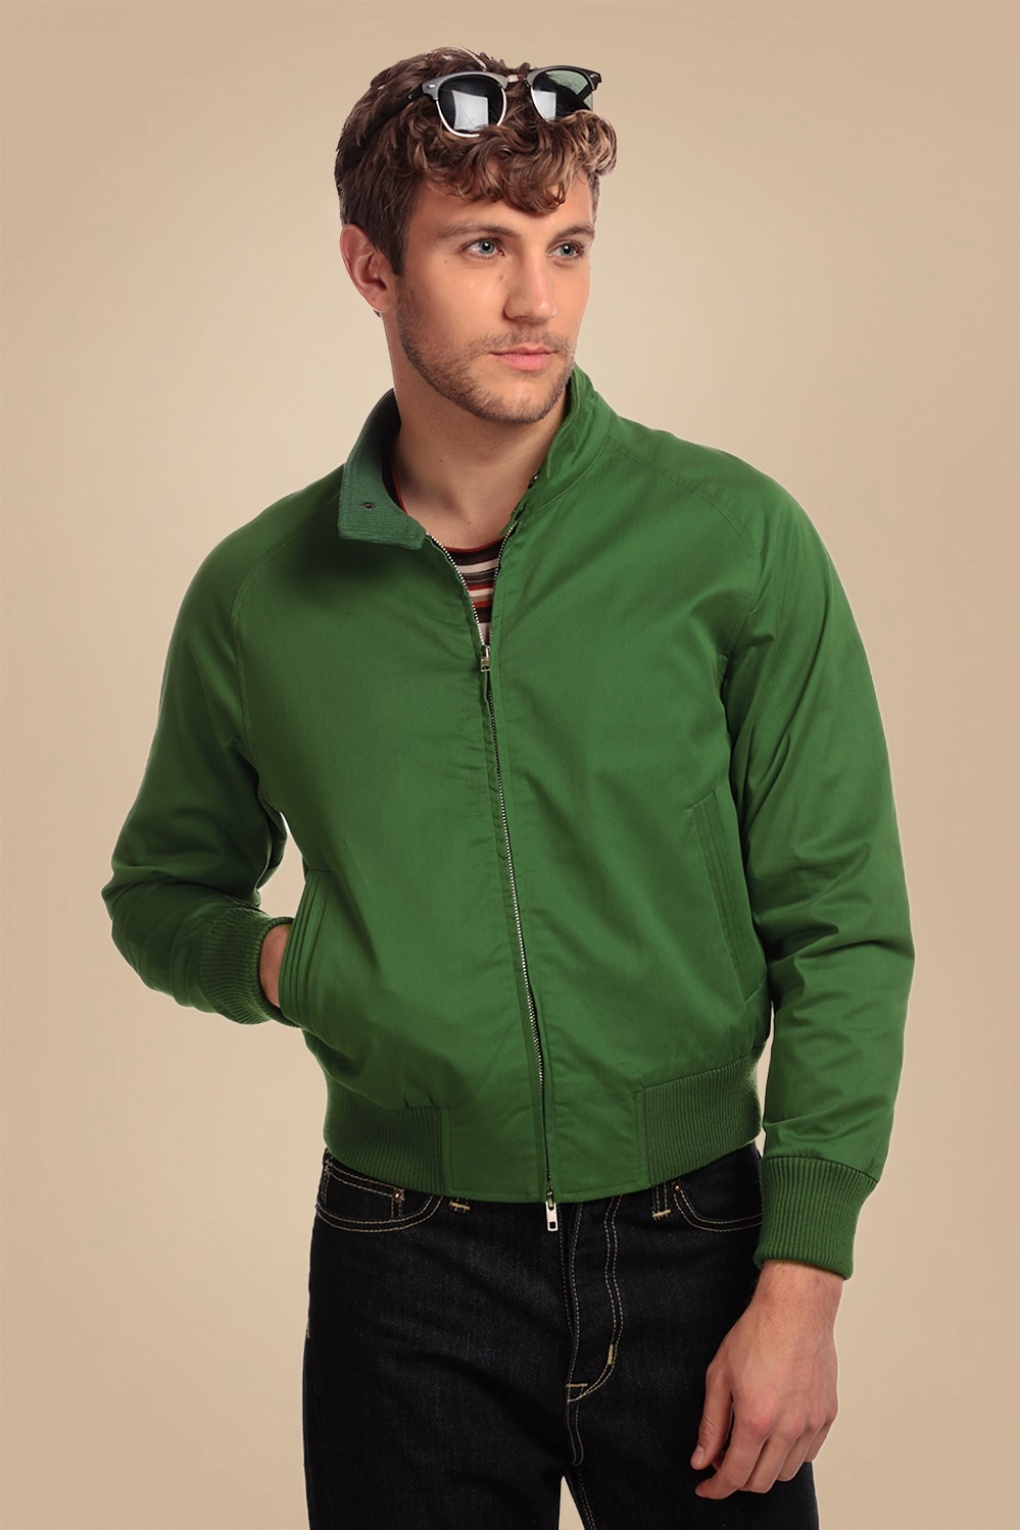 Men's Vintage Style Coats and Jackets 50s Barry Plain Jacket in Green £66.40 AT vintagedancer.com